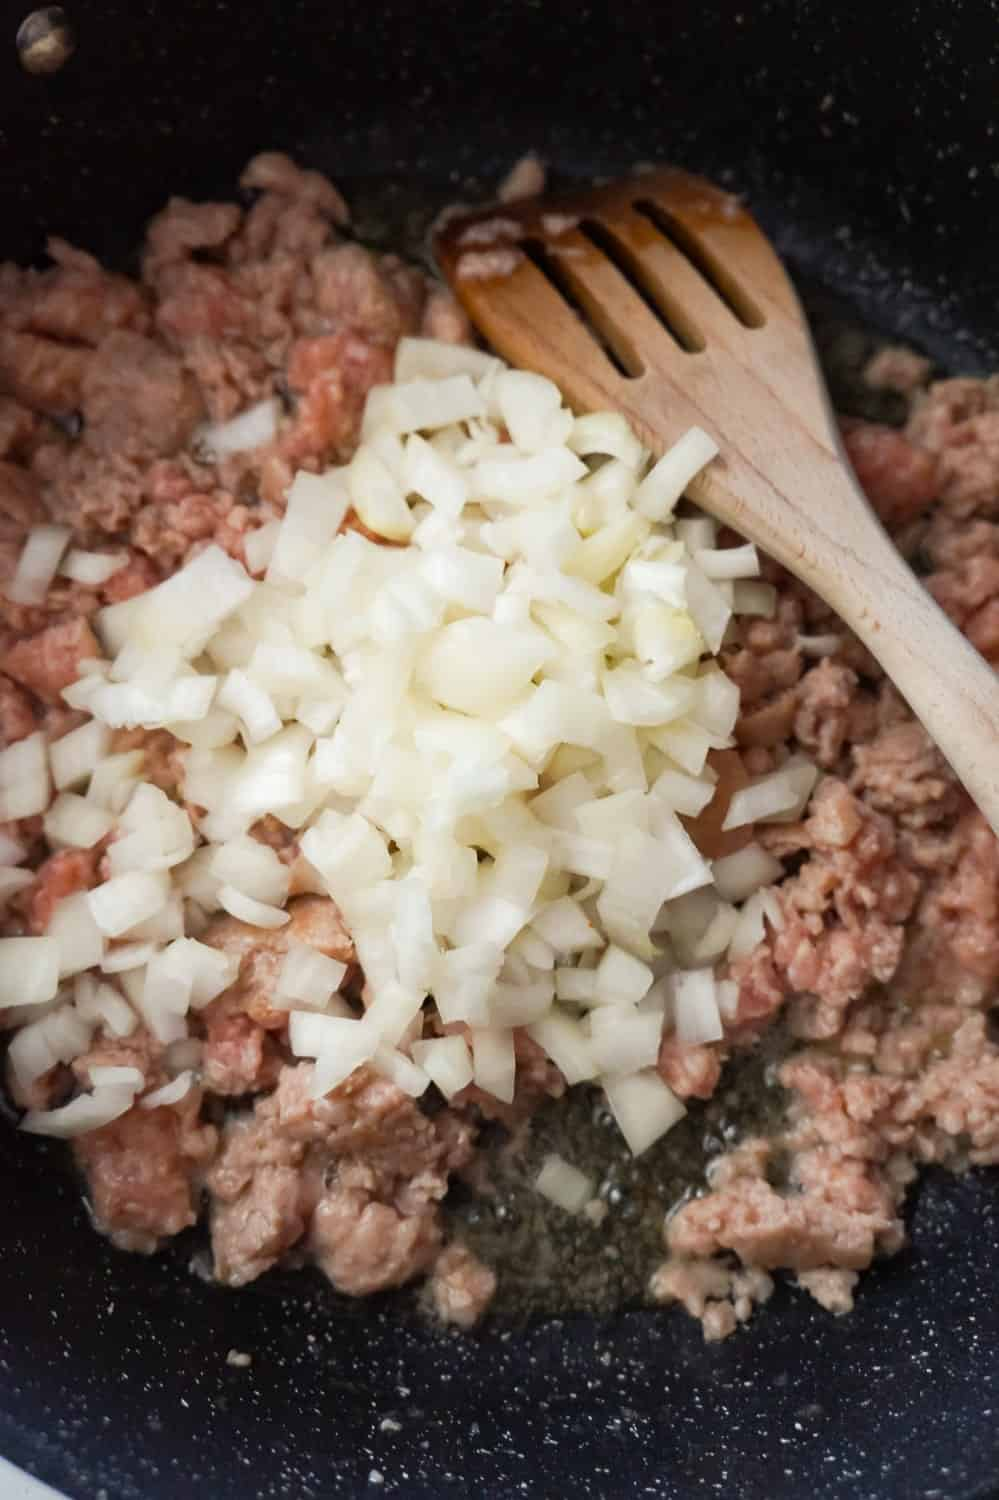 diced onions on top of raw ground sausage meat in a frying pan